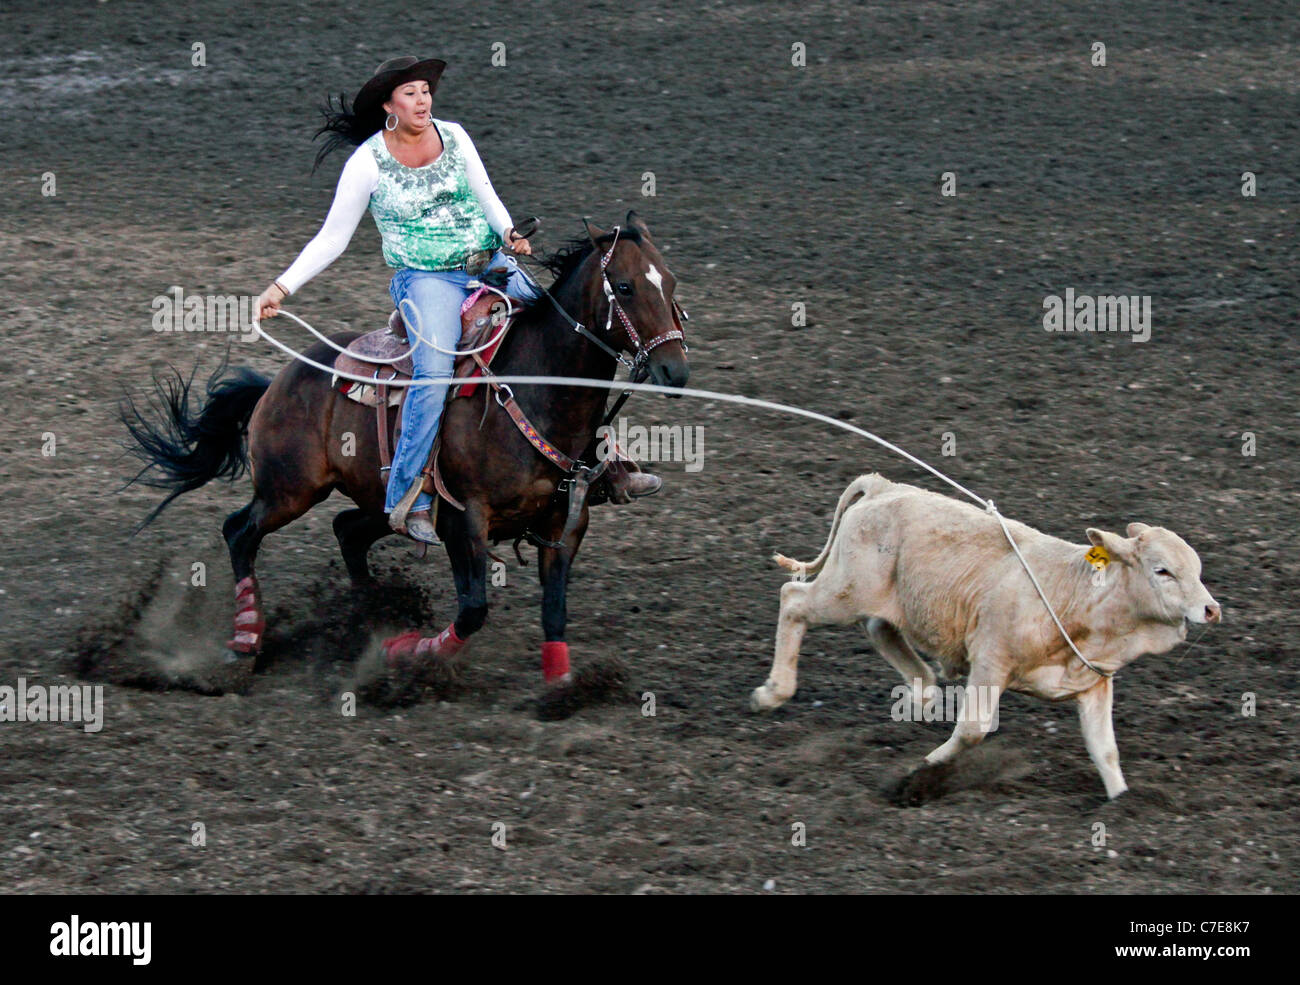 Woman competing in the breakaway event in the rodeo held on the Fort Hall reservation in Wyoming during the annual - Stock Image